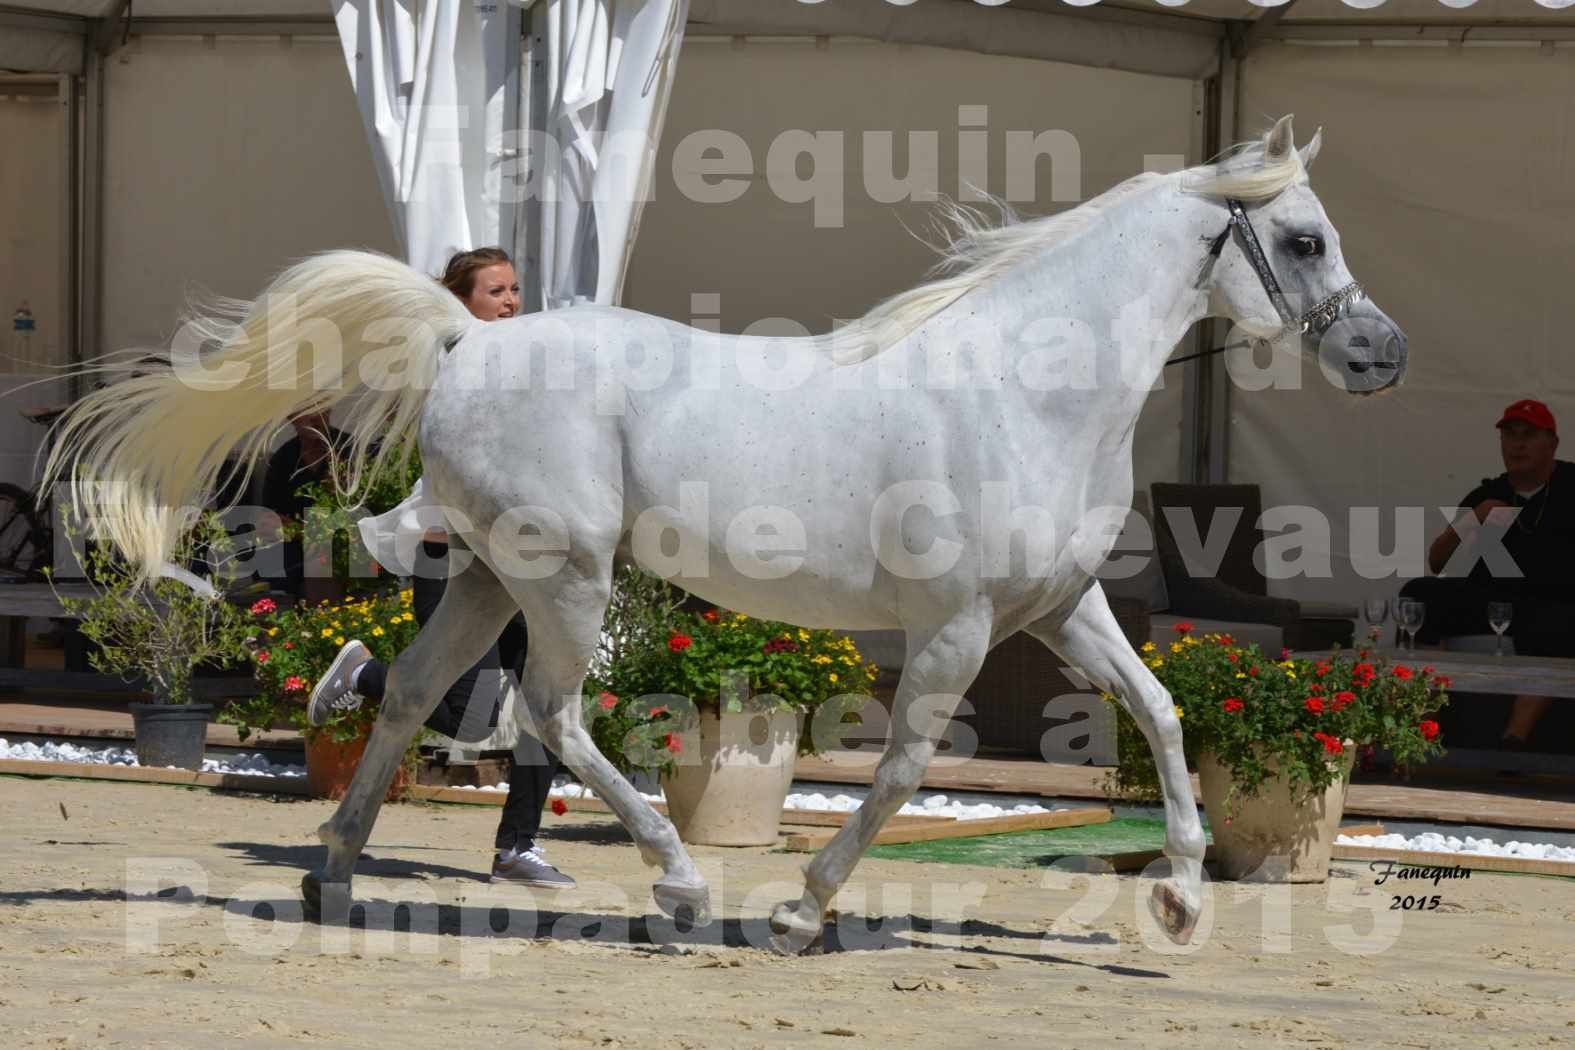 Championnat de FRANCE du cheval ARABE à POMPADOUR 2015 - Classes PROFESSIONNELS - HAADJA - 2